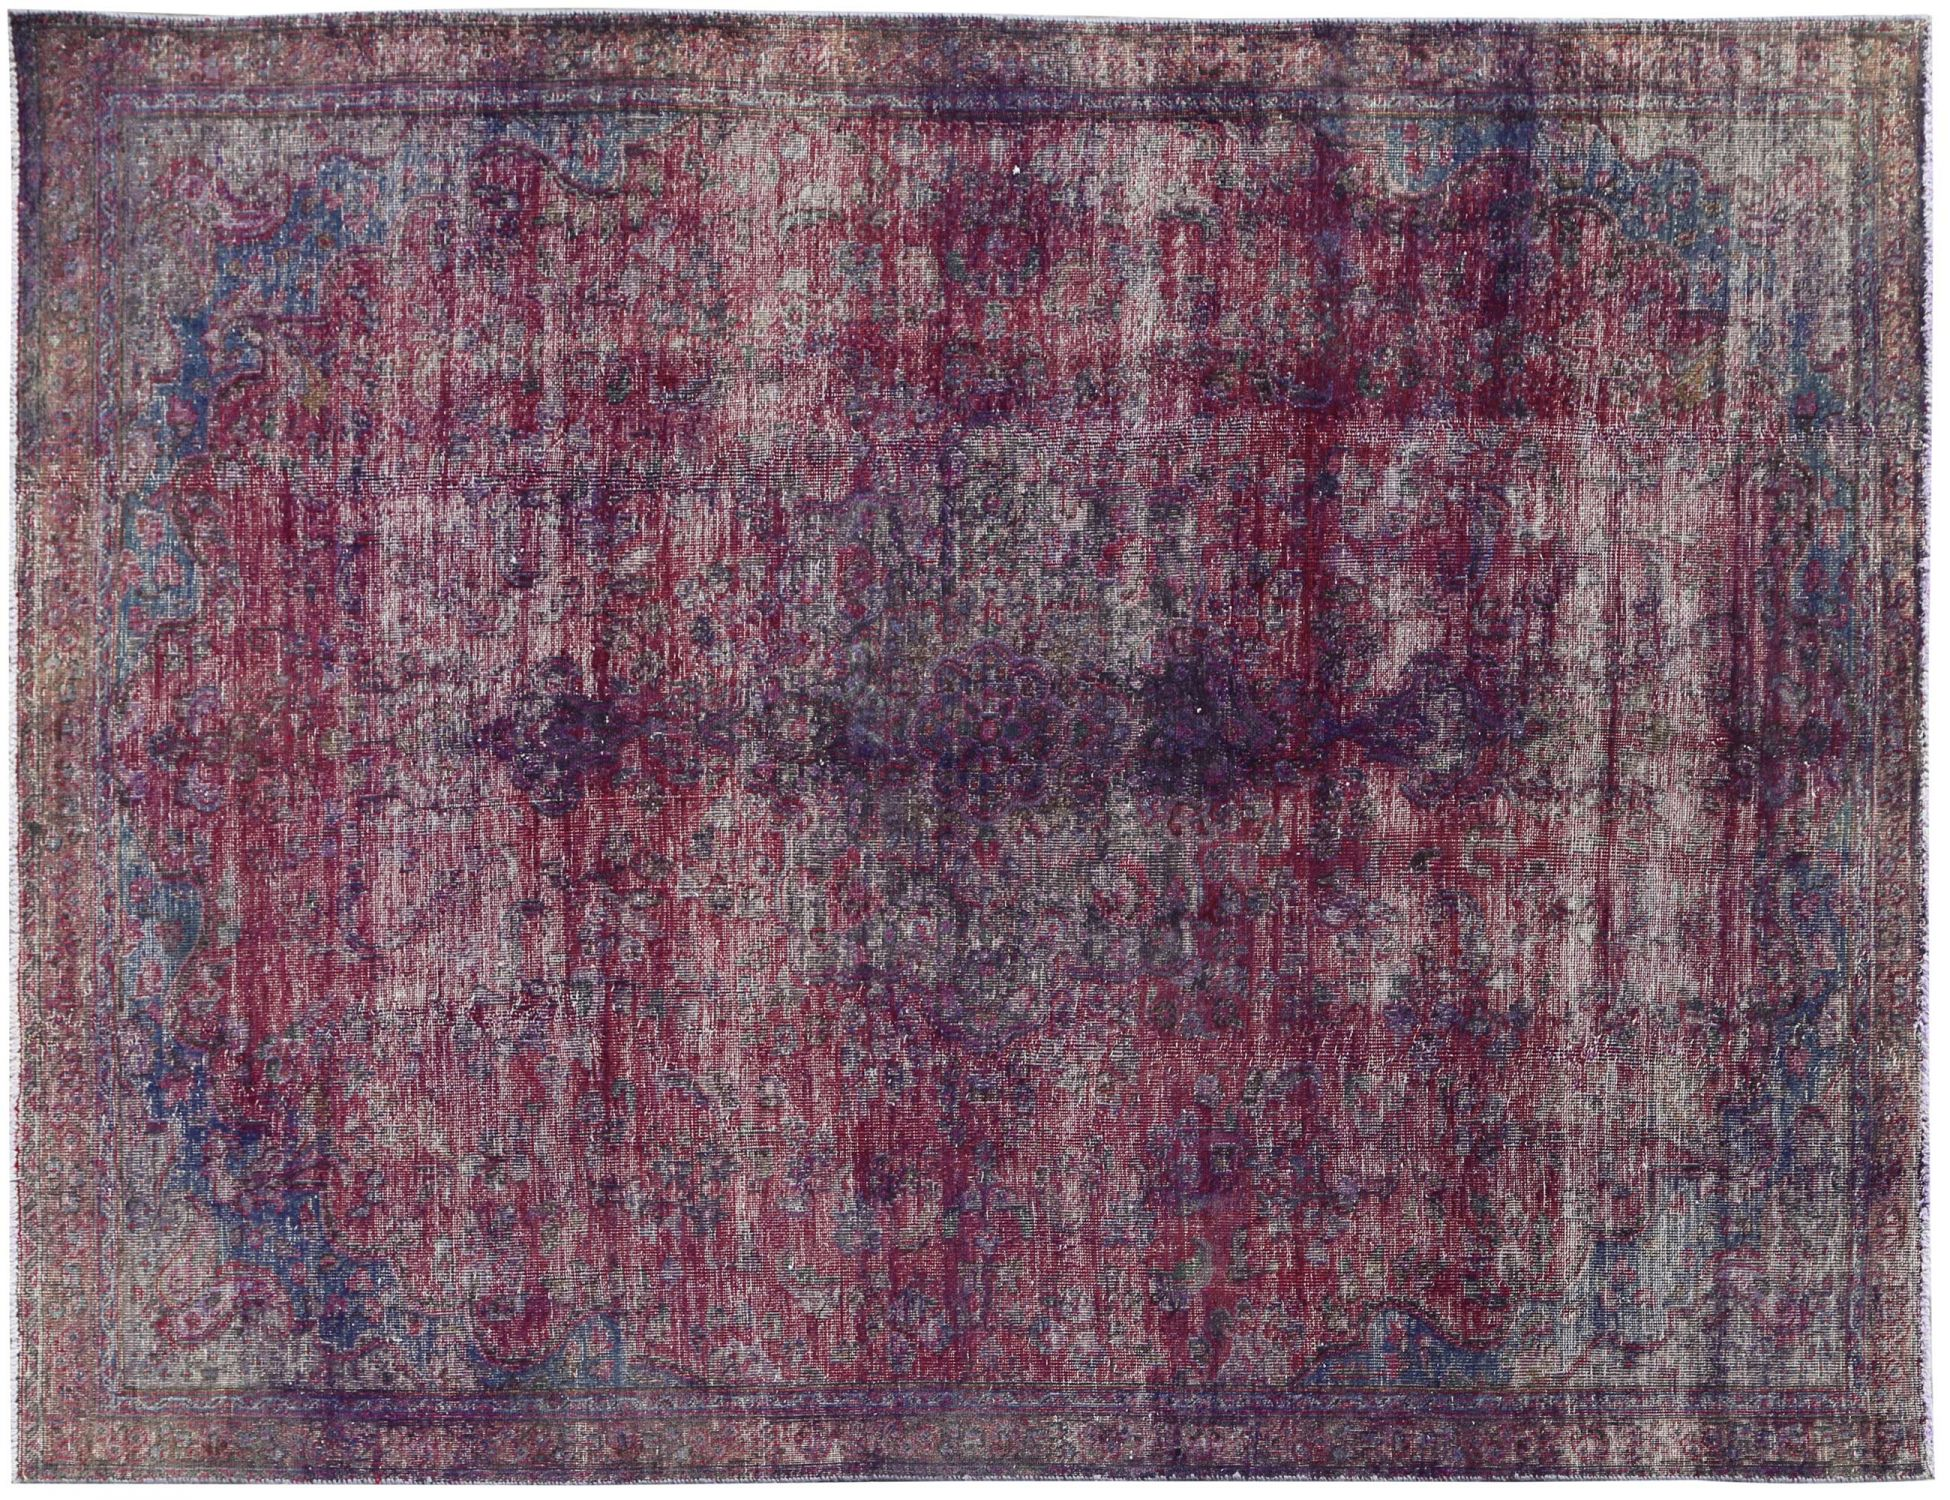 Vintage Carpet  purple <br/>268 x 182 cm